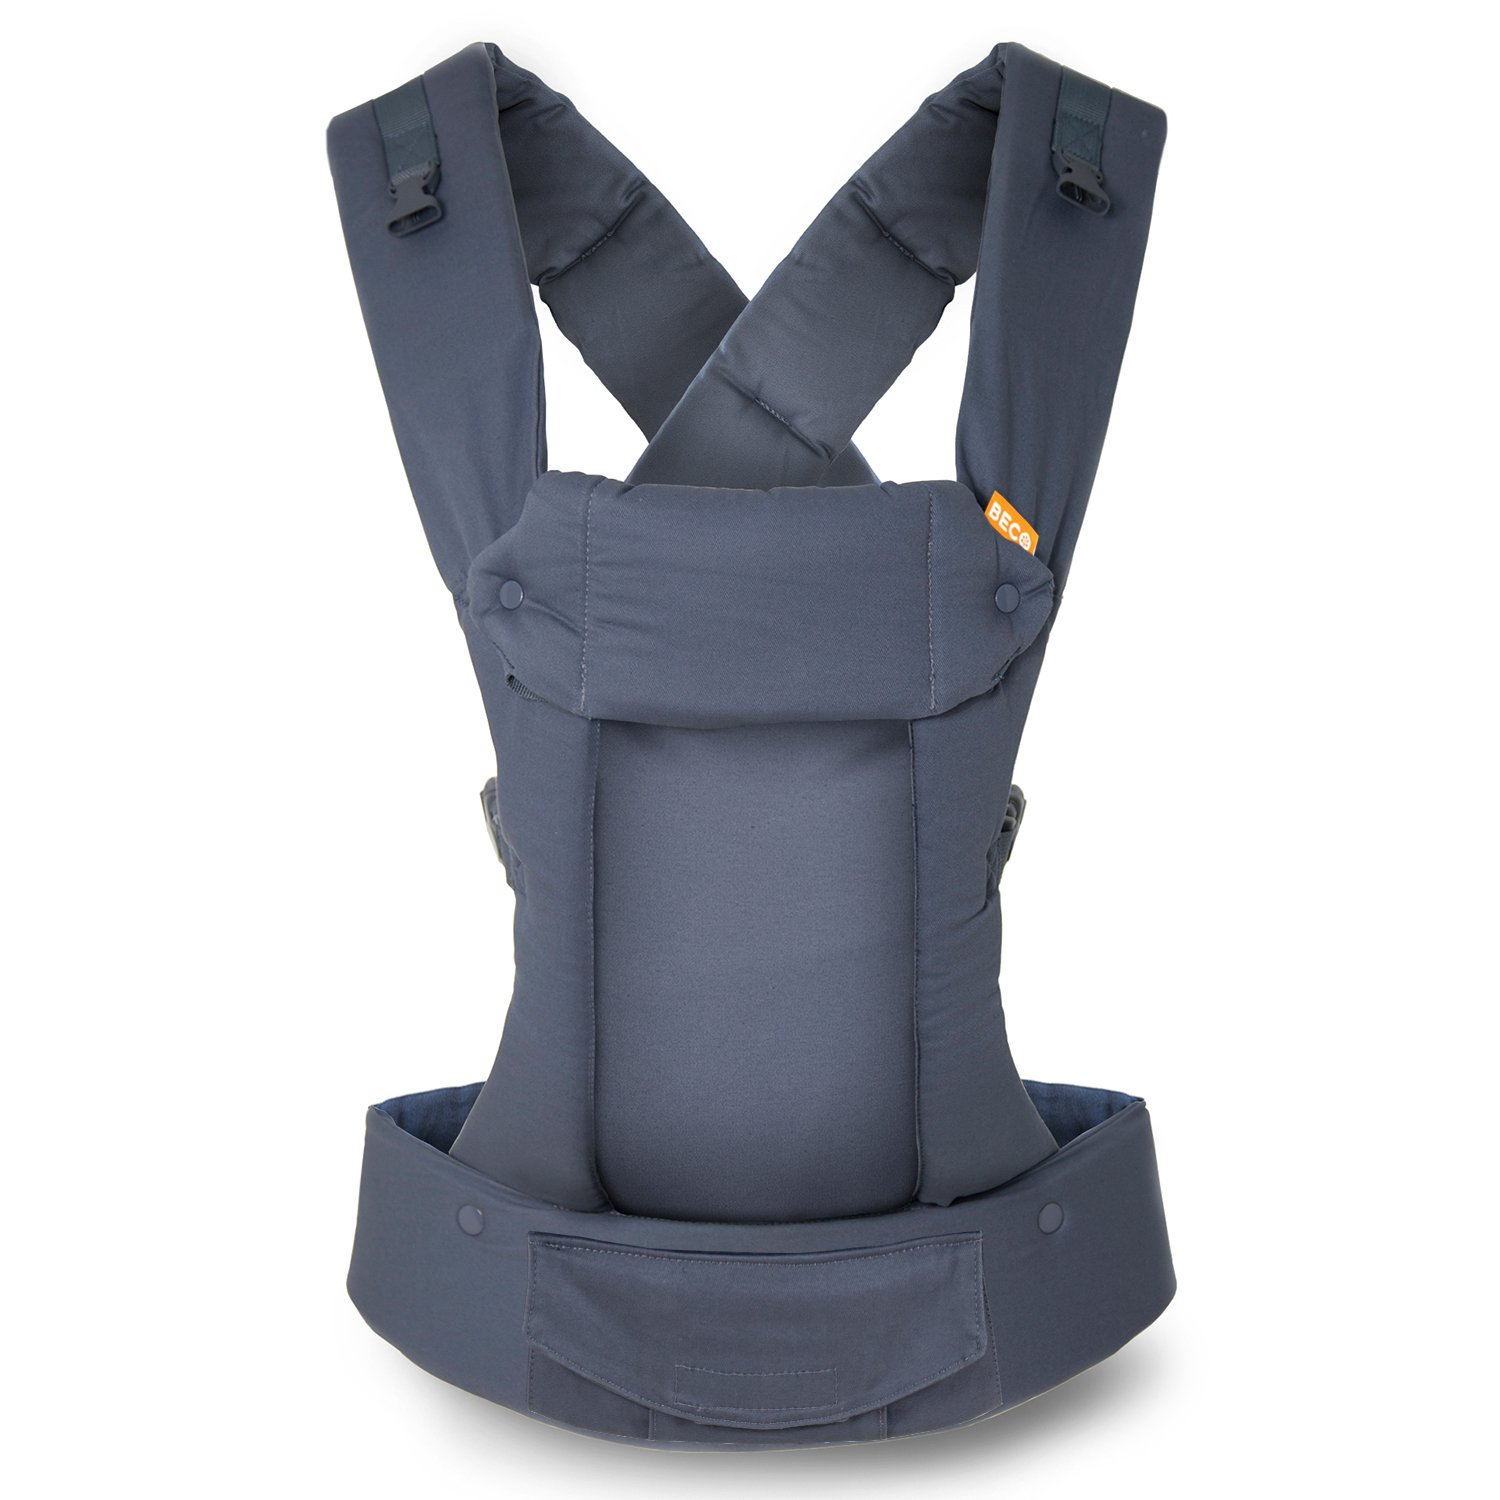 Gemini Performance Baby Carrier By Beco - Multi-Position Soft Structured Sling w/ Adjustable Straps & Comfort Padding for Infant/Toddler Hip Support - Metro Black with Pocket Beco Baby Carrier GPRE-MBLK